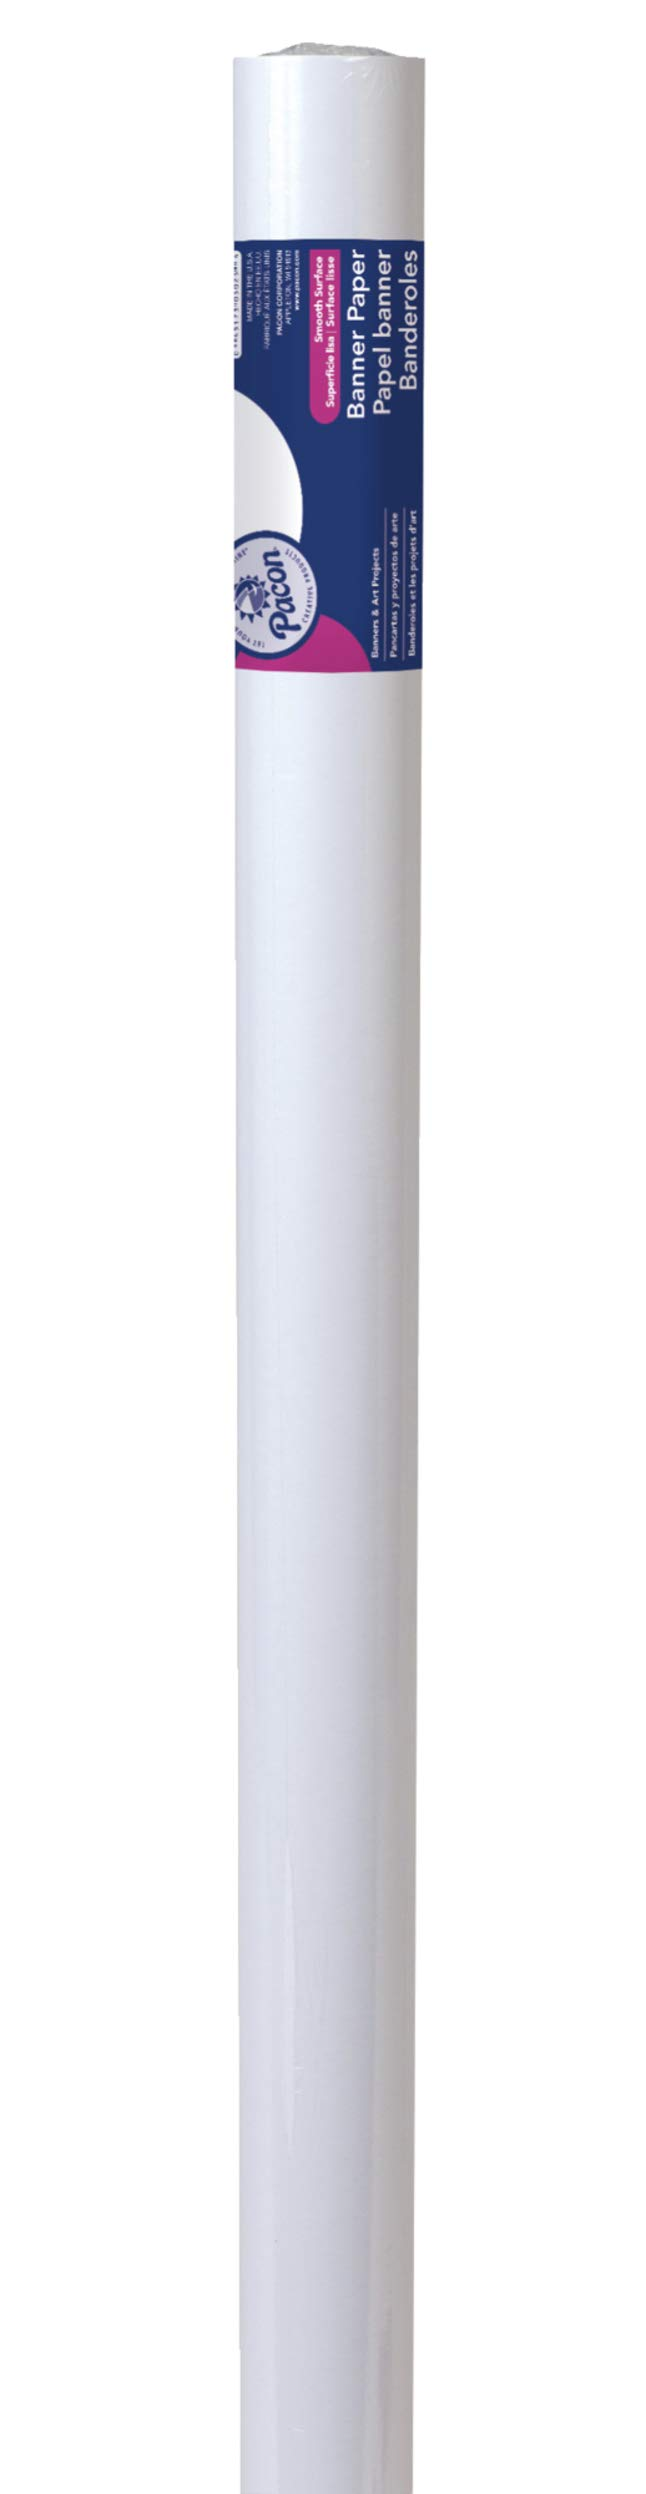 Pacon Banner Roll, 36''X75', White by PACON